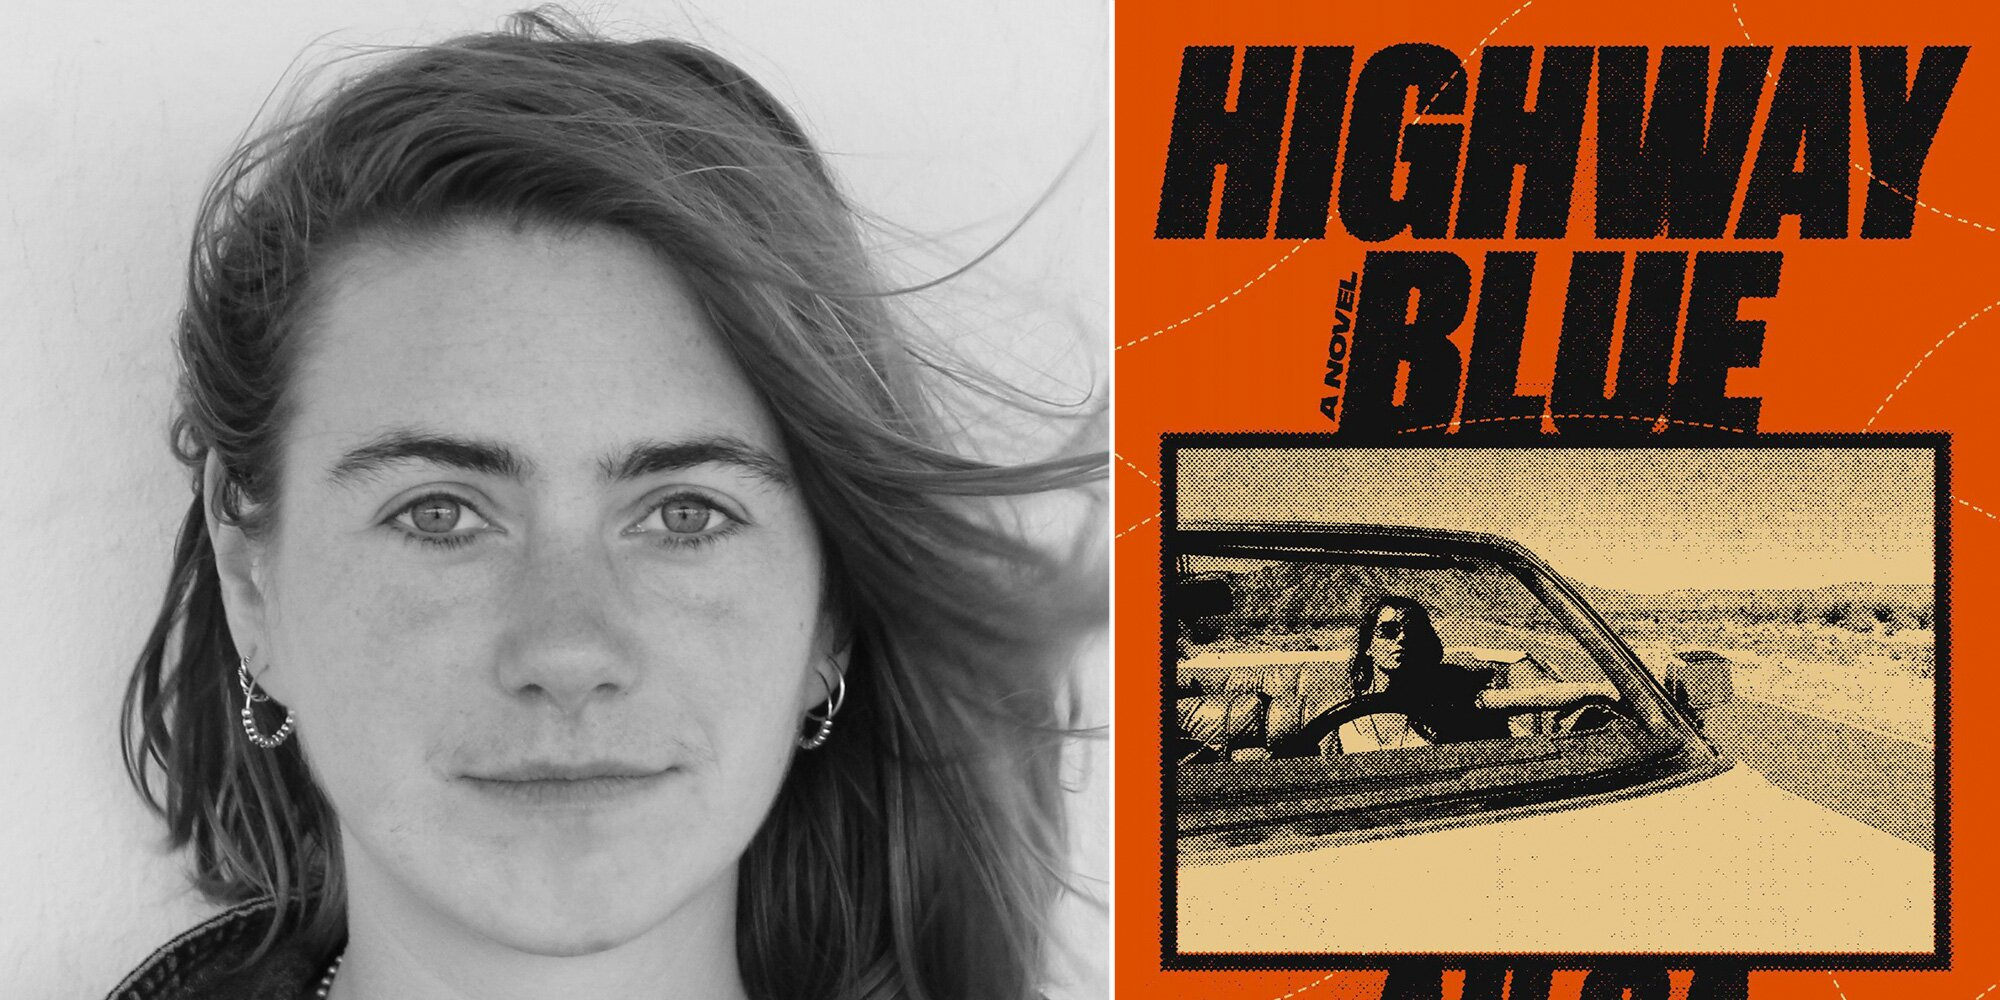 What's in a Page: Ailsa McFarlane on the charged moments of her debut 'Highway Blue'